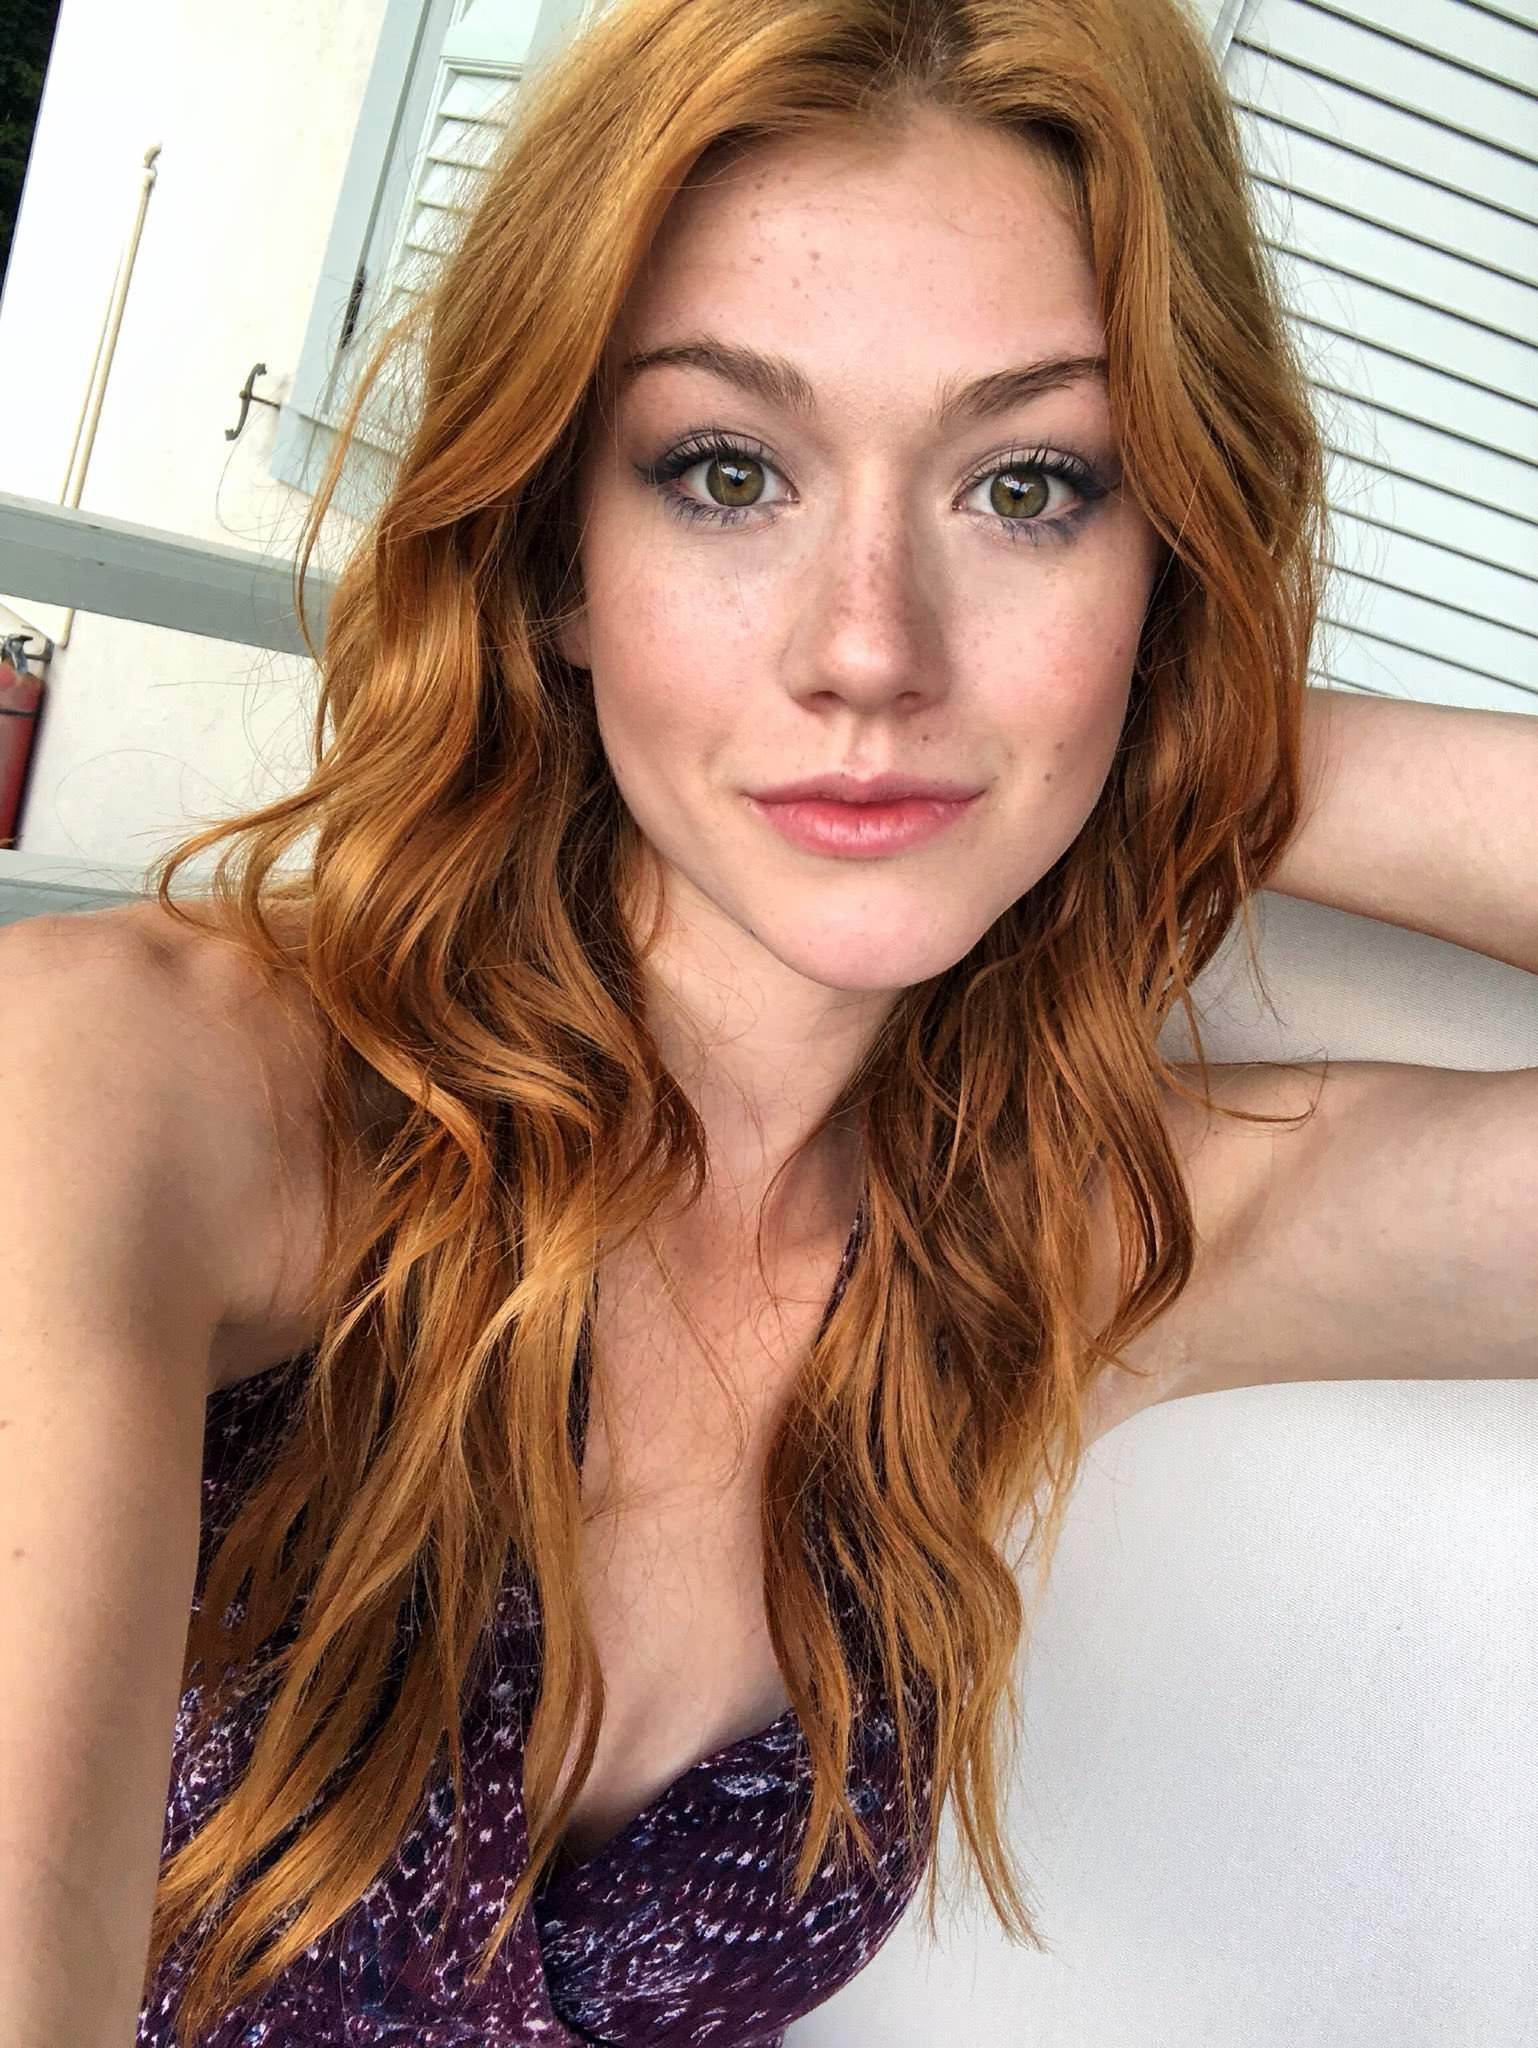 Katherine McNamara nudes (84 pics), young Pussy, Snapchat, lingerie 2020